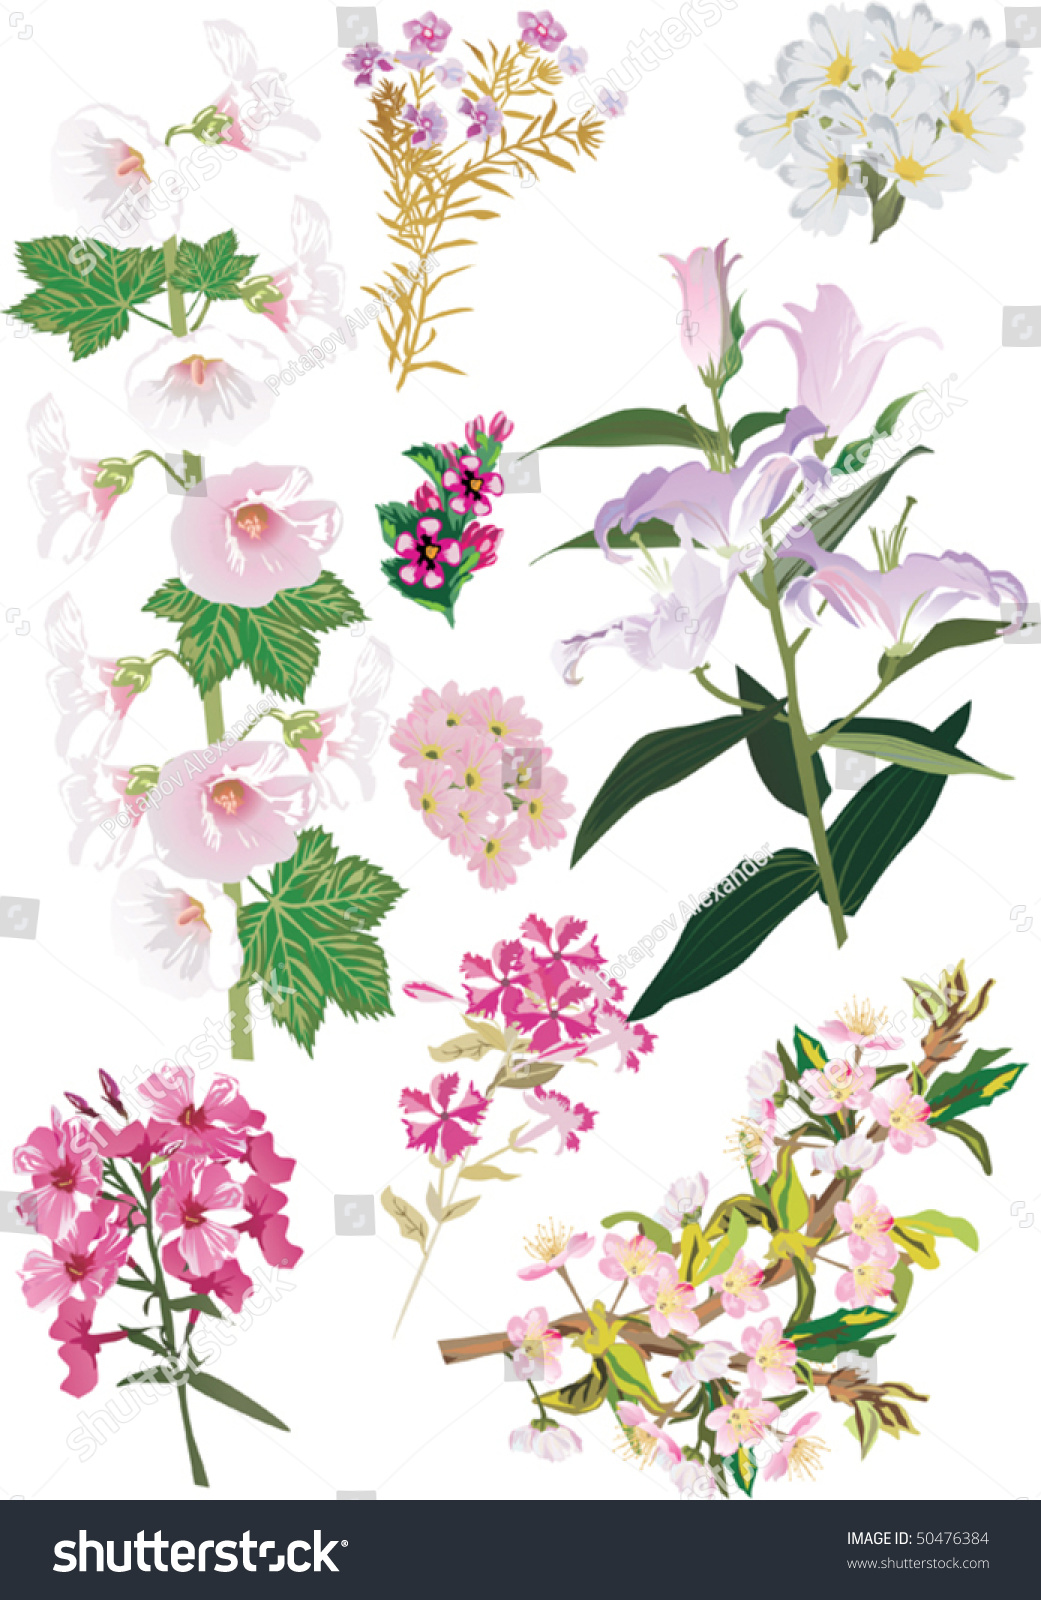 Illustration With Different White And Pink Flowers Collection Ez